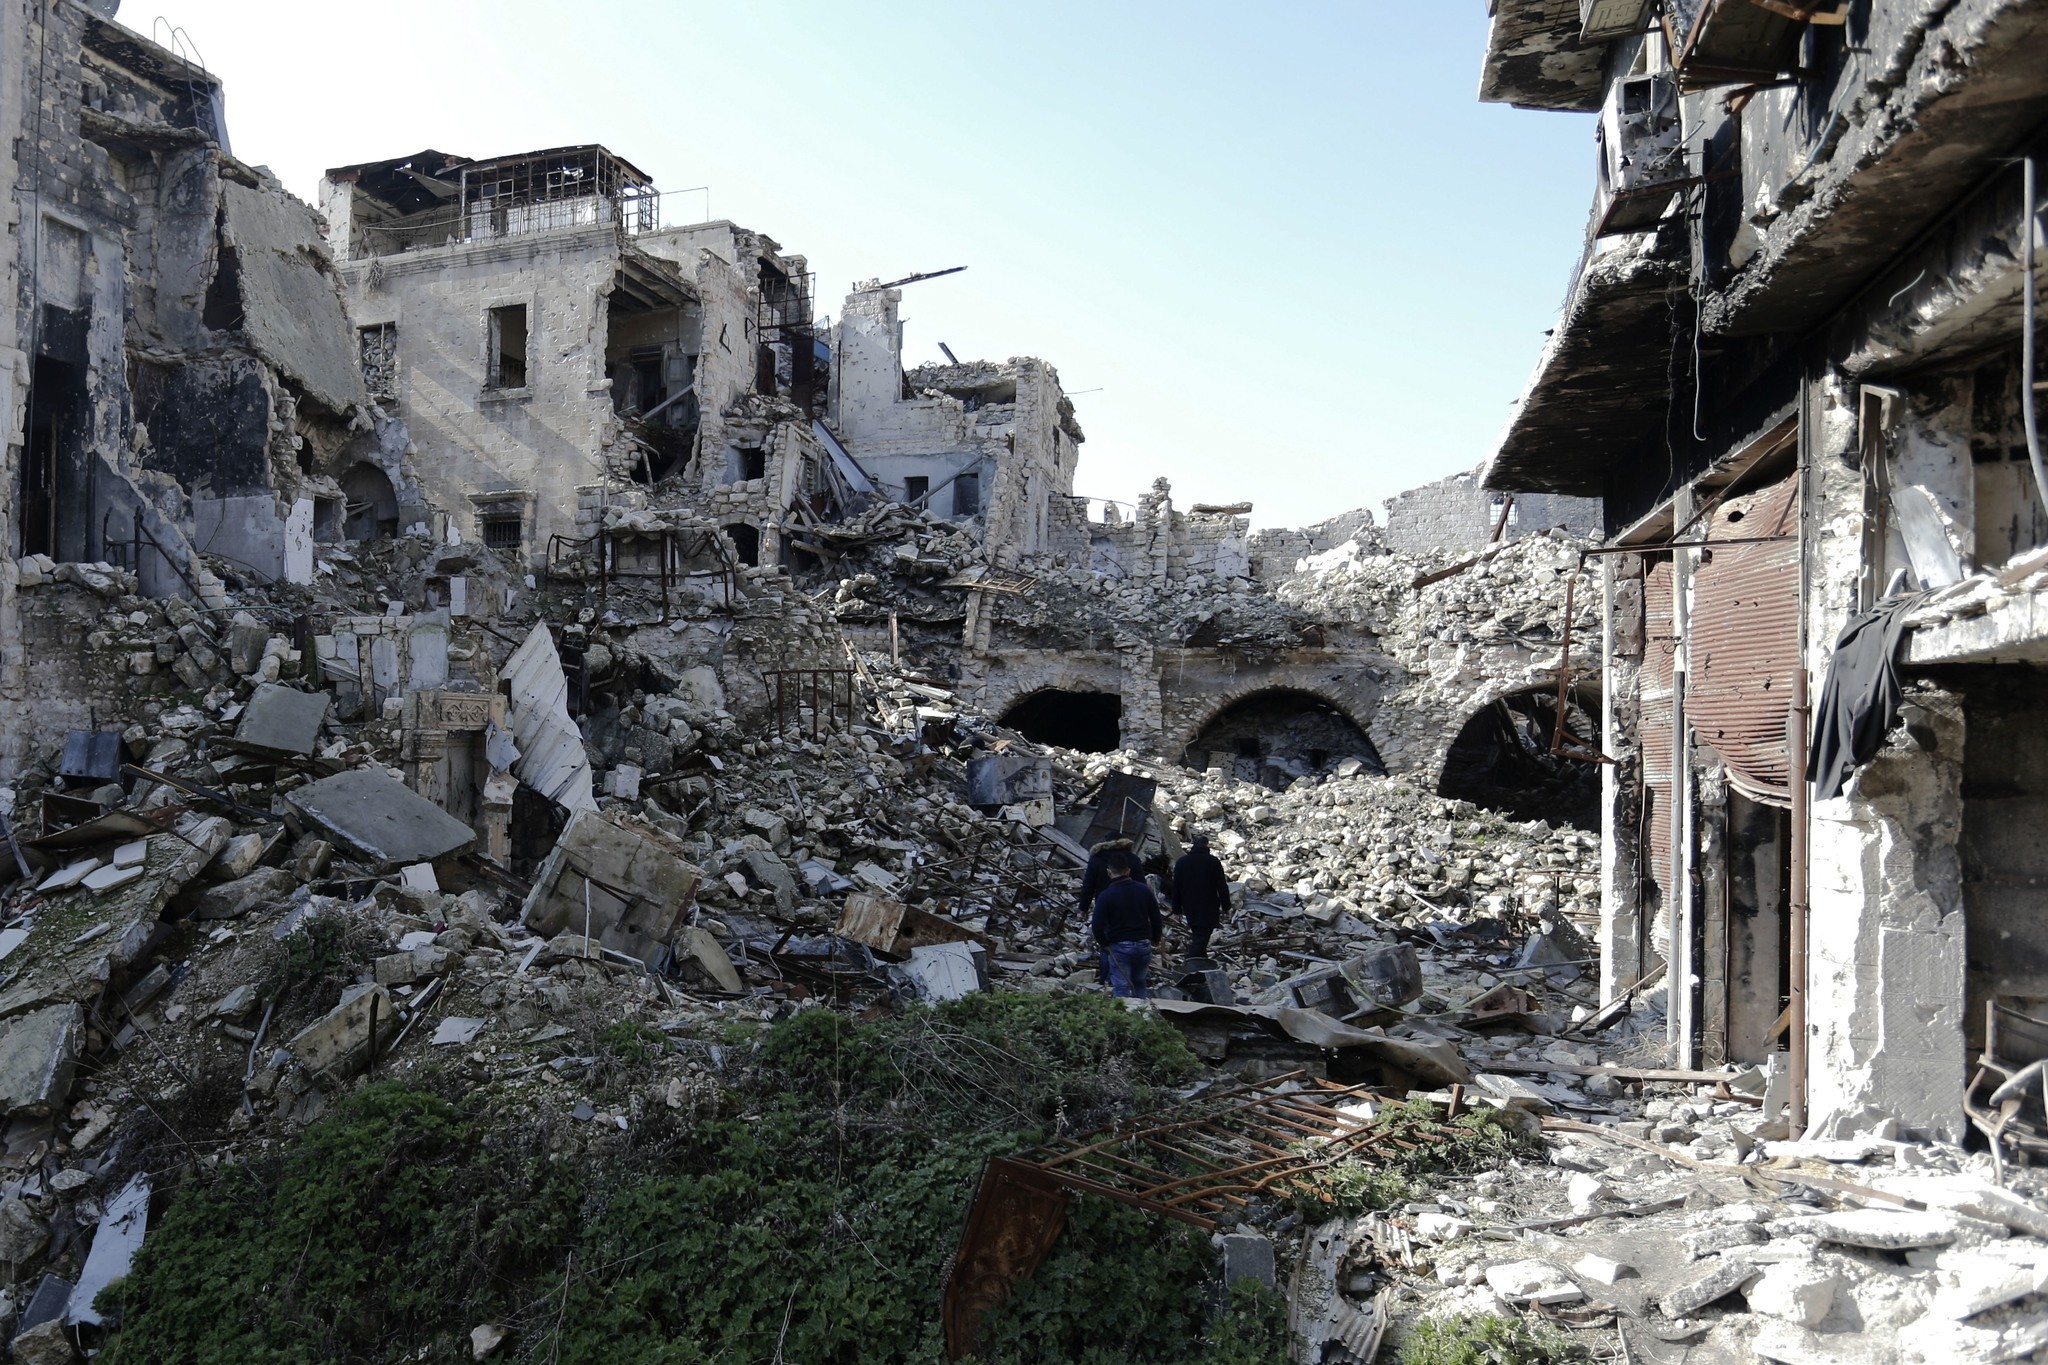 Syrians walk through the destruction in the old city of Aleppo, Syria, Saturday, Jan. 21, 2017. (AP Photo)